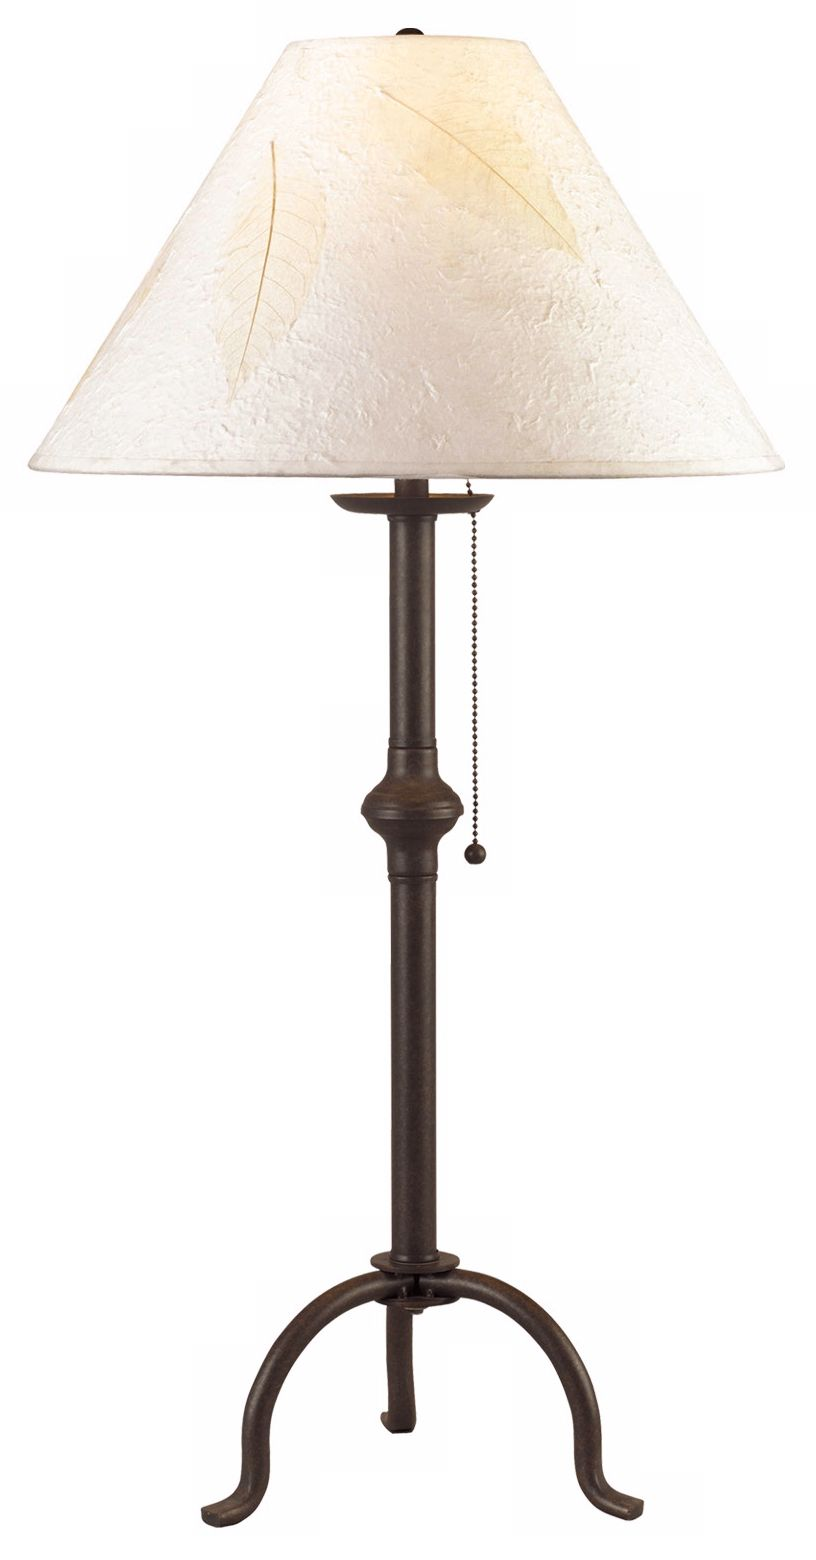 craftsman collection pennyfoot wrought iron table lamp - Cal Lighting